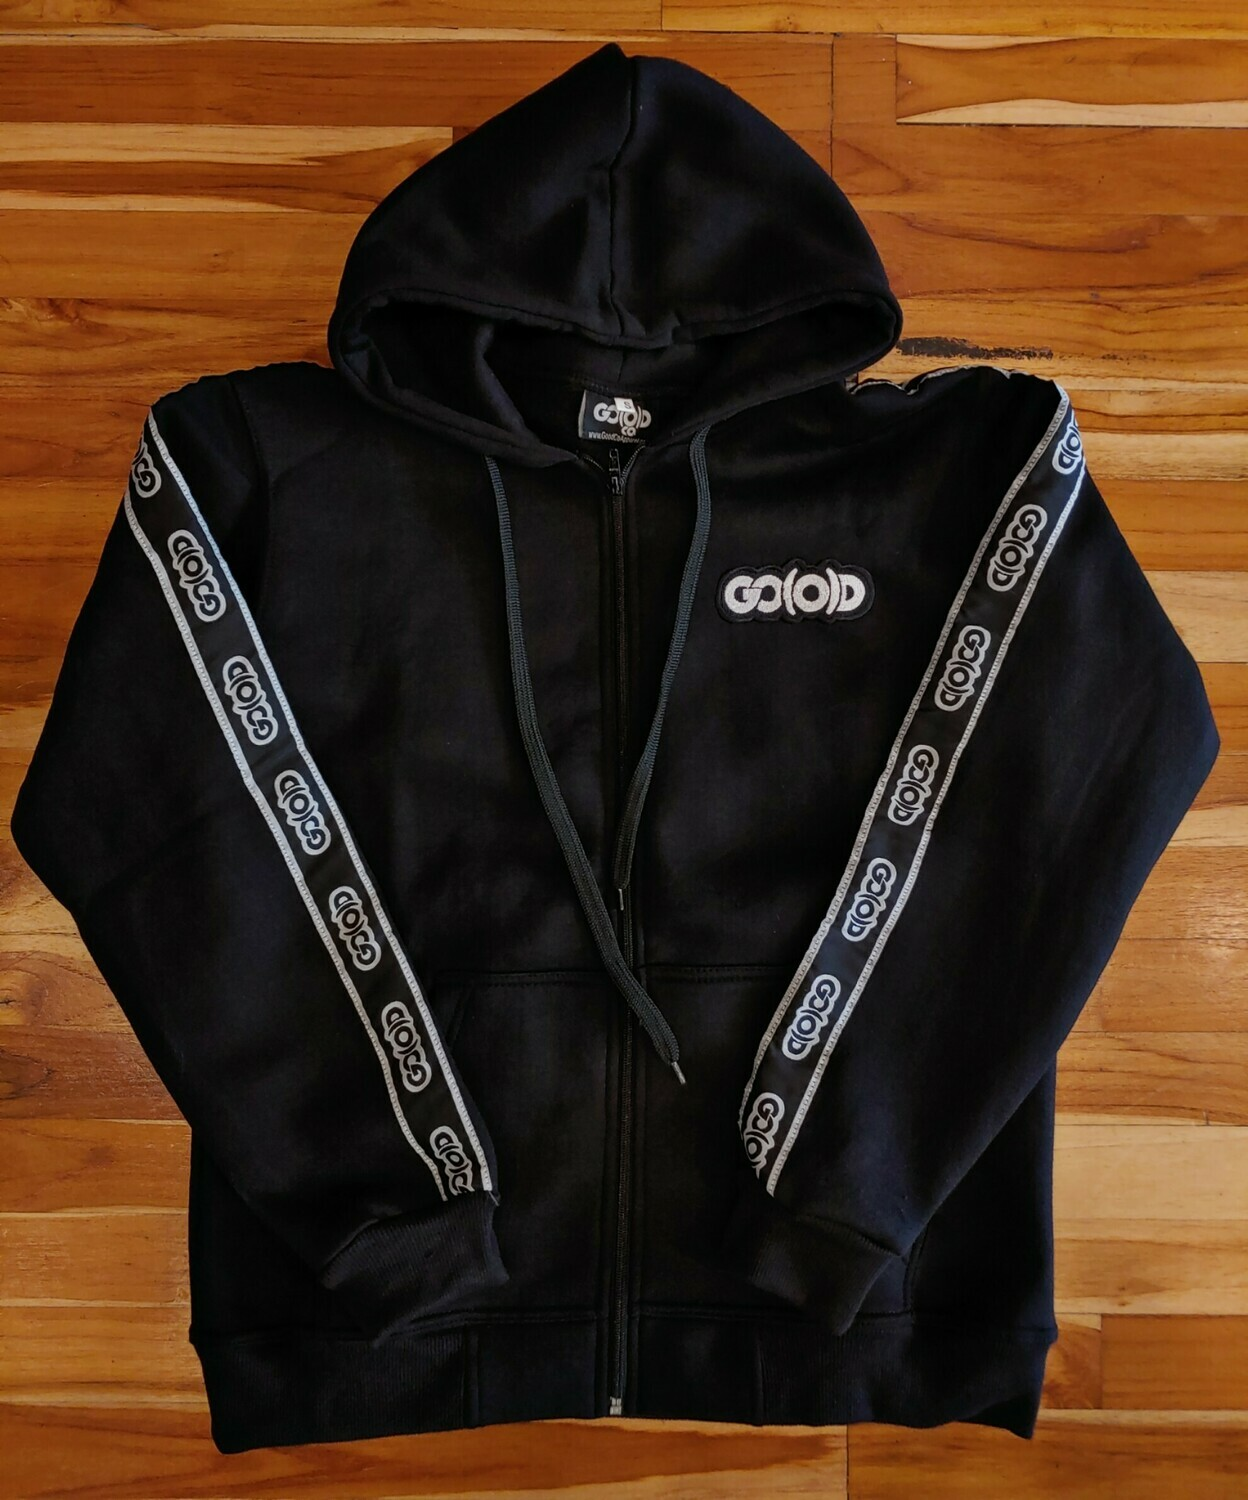 GO(O)D Strip Jacket-black/white